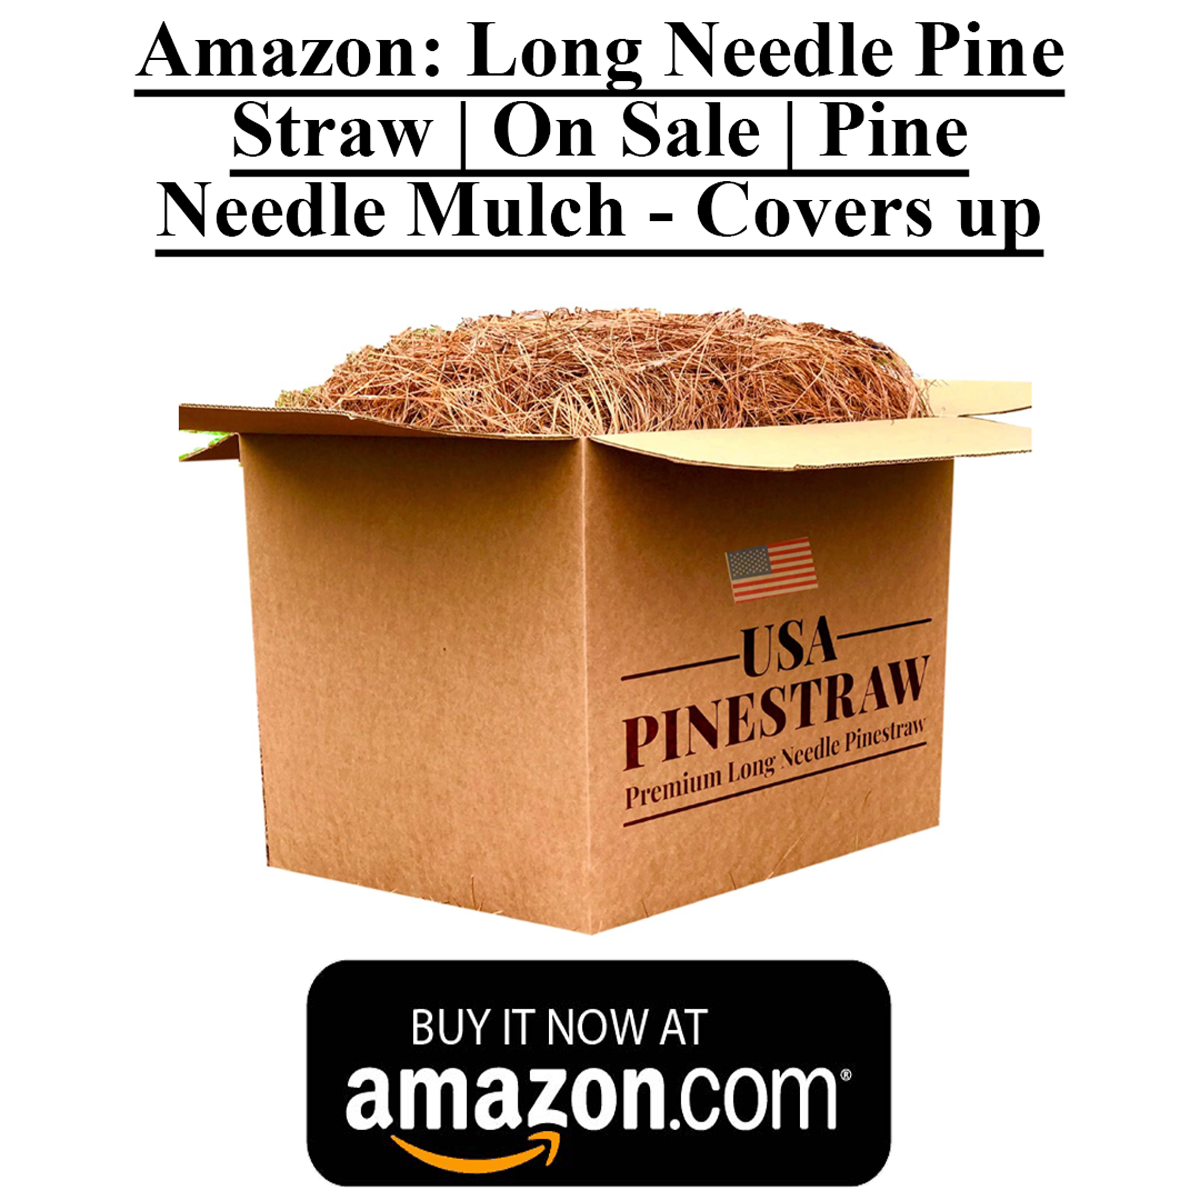 Box Of Long Pine Needles That You Can Purchase On Amazon. Pine Needles Are Ideal For Beekeeping Smokers. Made In The USA